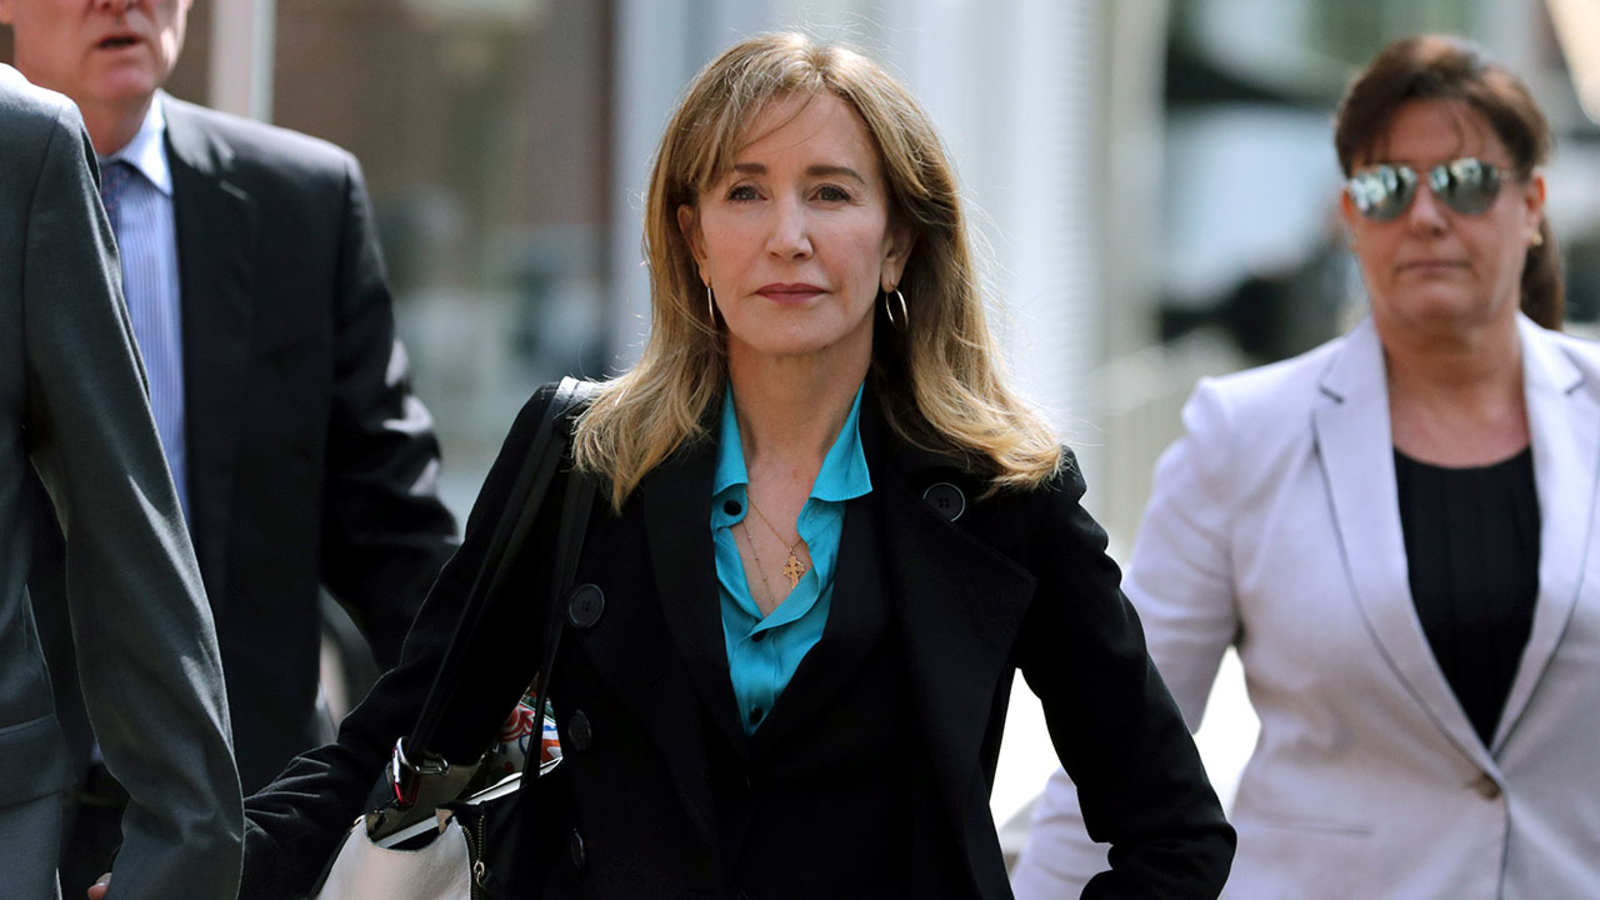 Image result for felicity huffman tears cnn